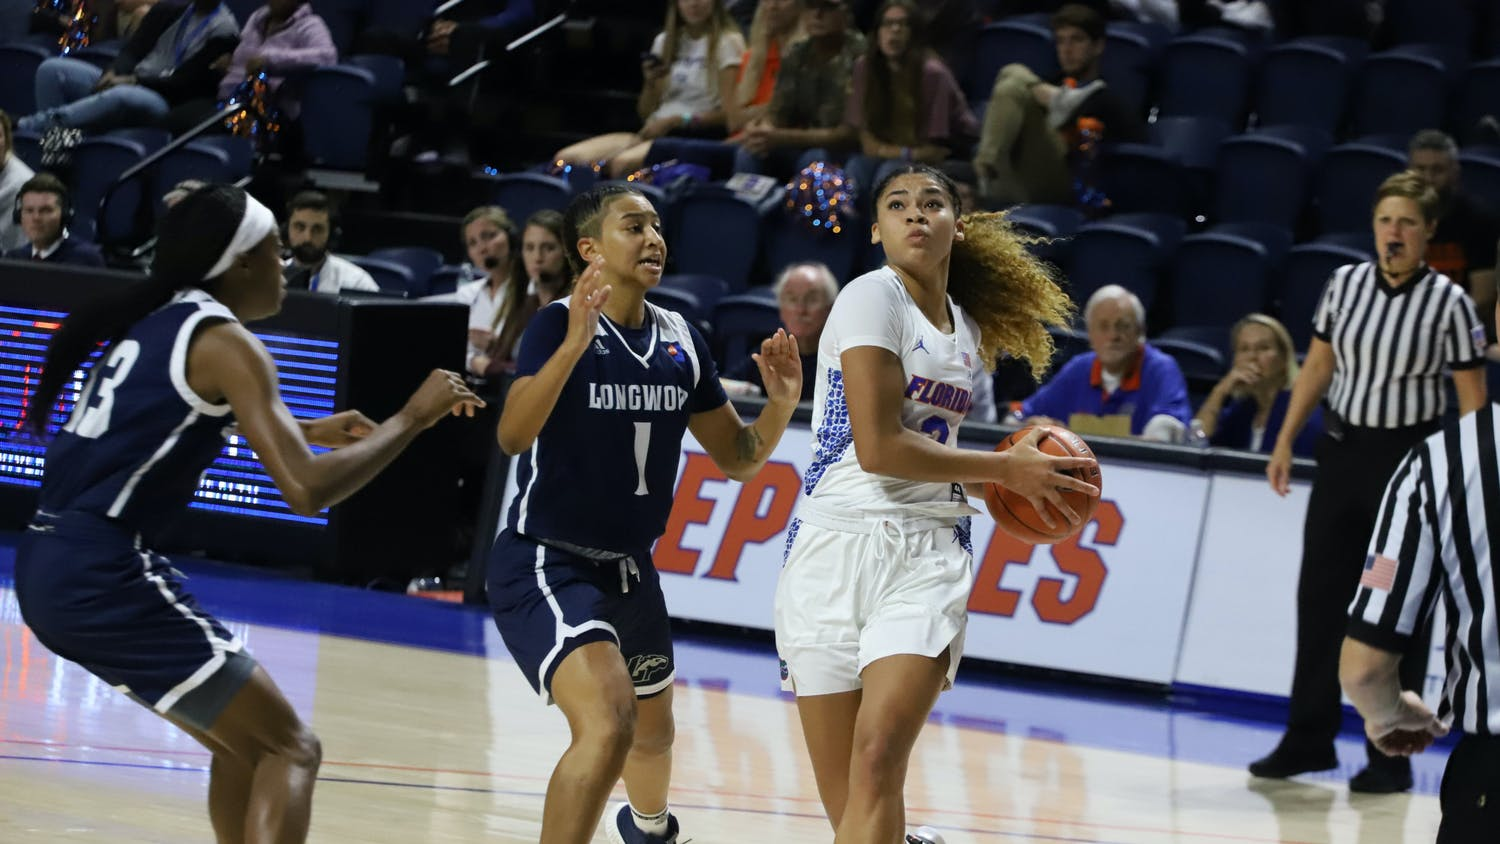 Lavender Briggs showed an early surge of energy she lacked Jan. 3 against Texas A&M. Photo from UF-Longwood game in November 2019.